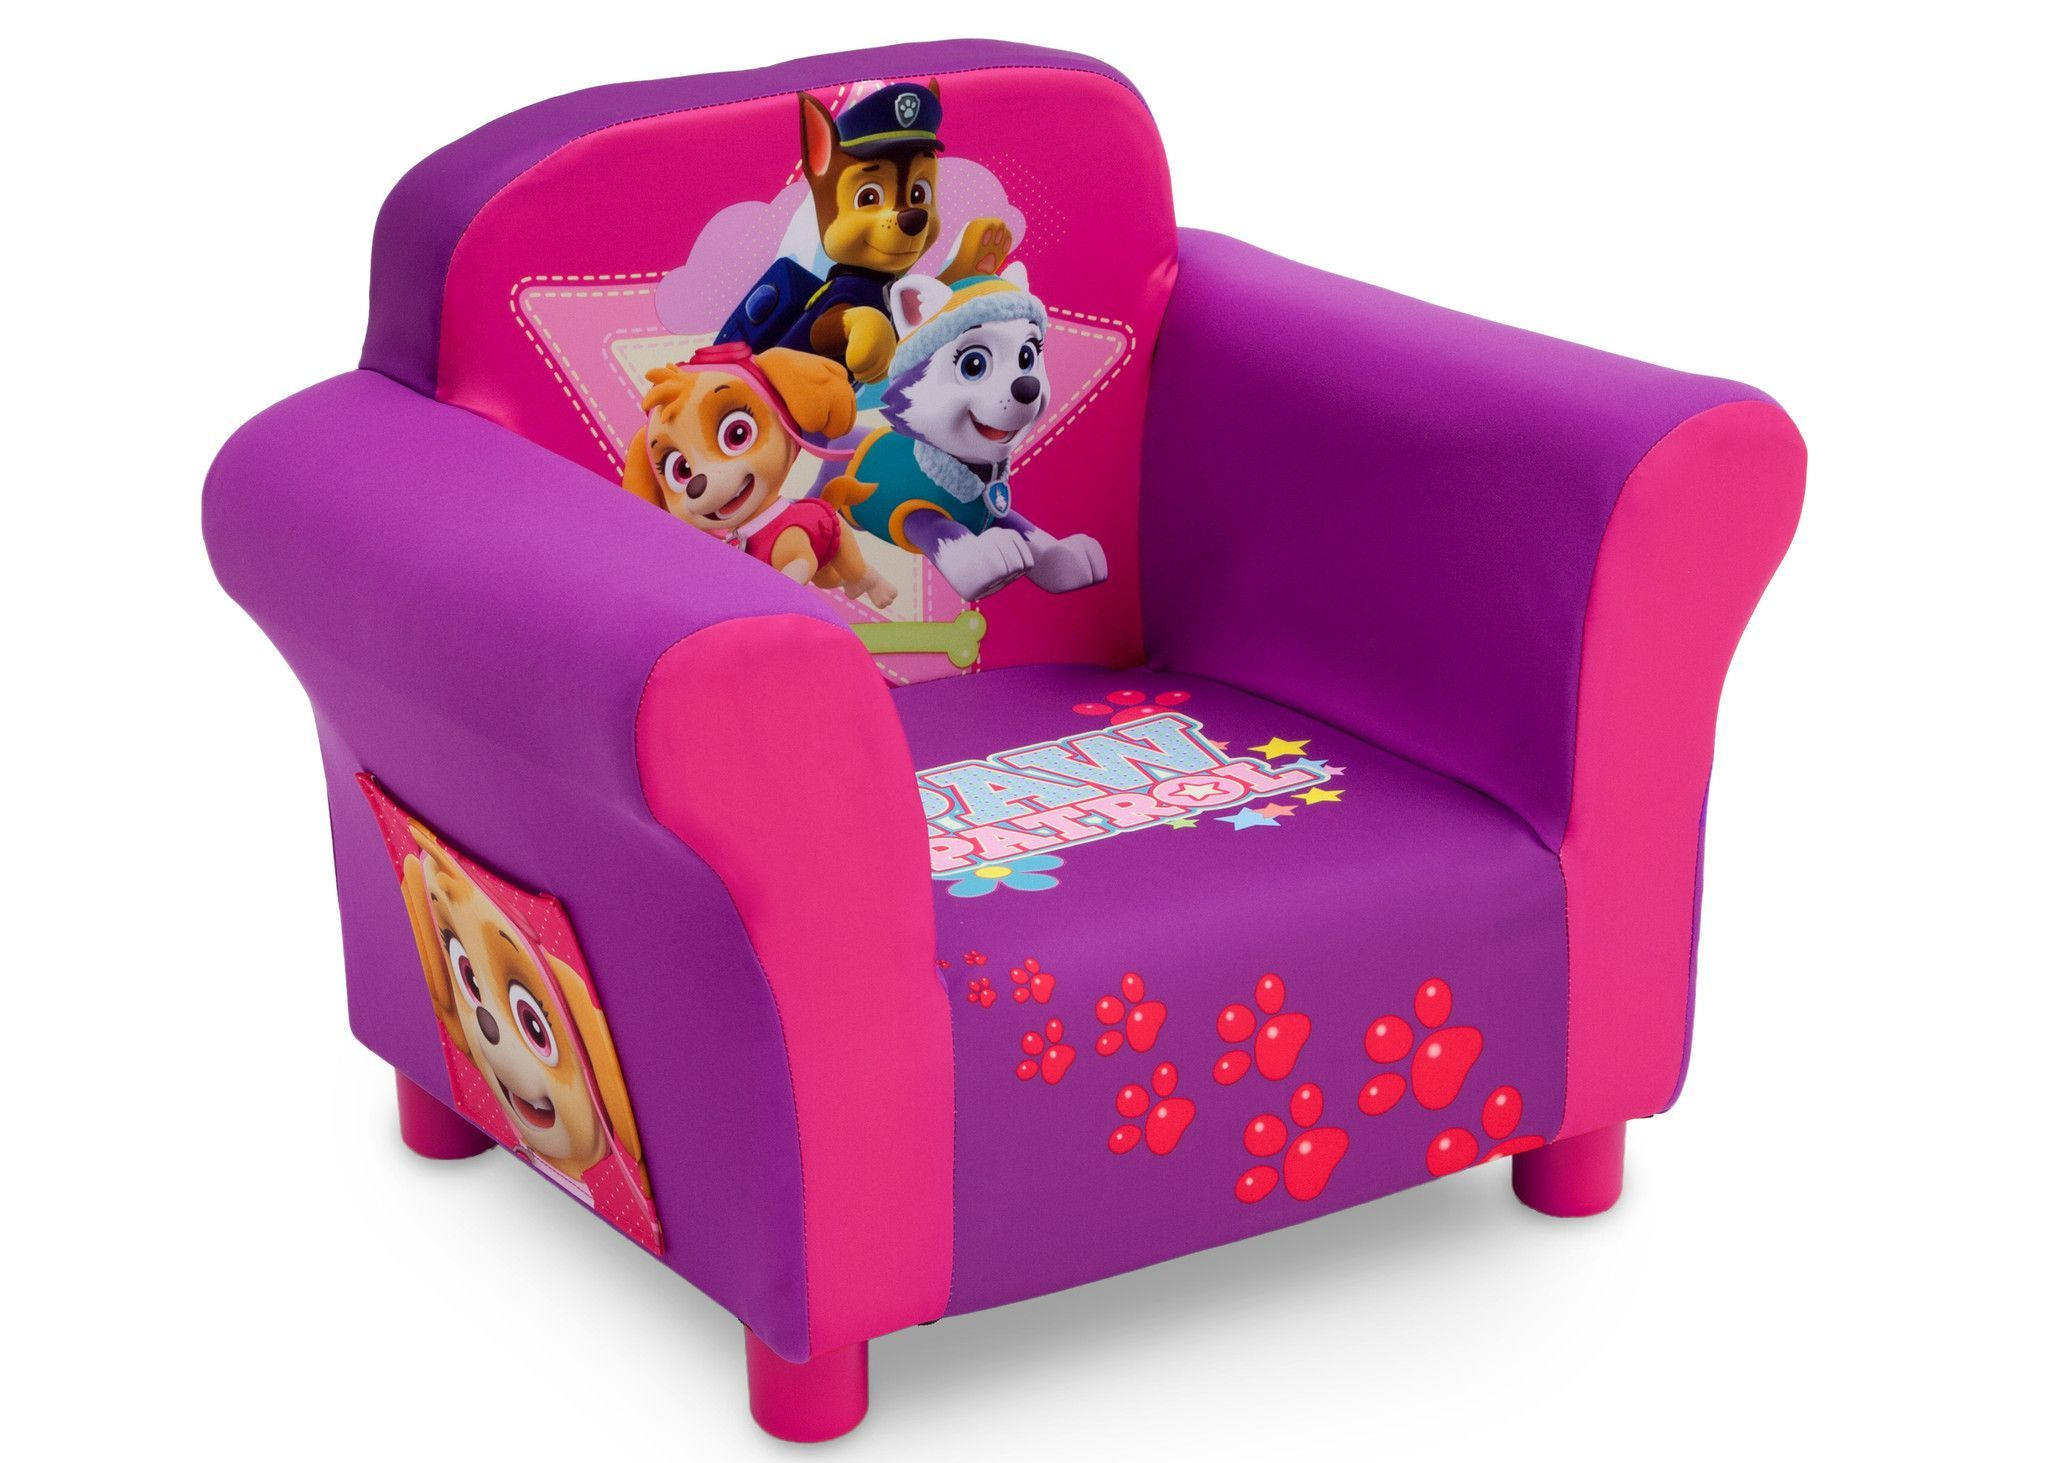 PAW Patrol Skye & Everest Upholstered Chair